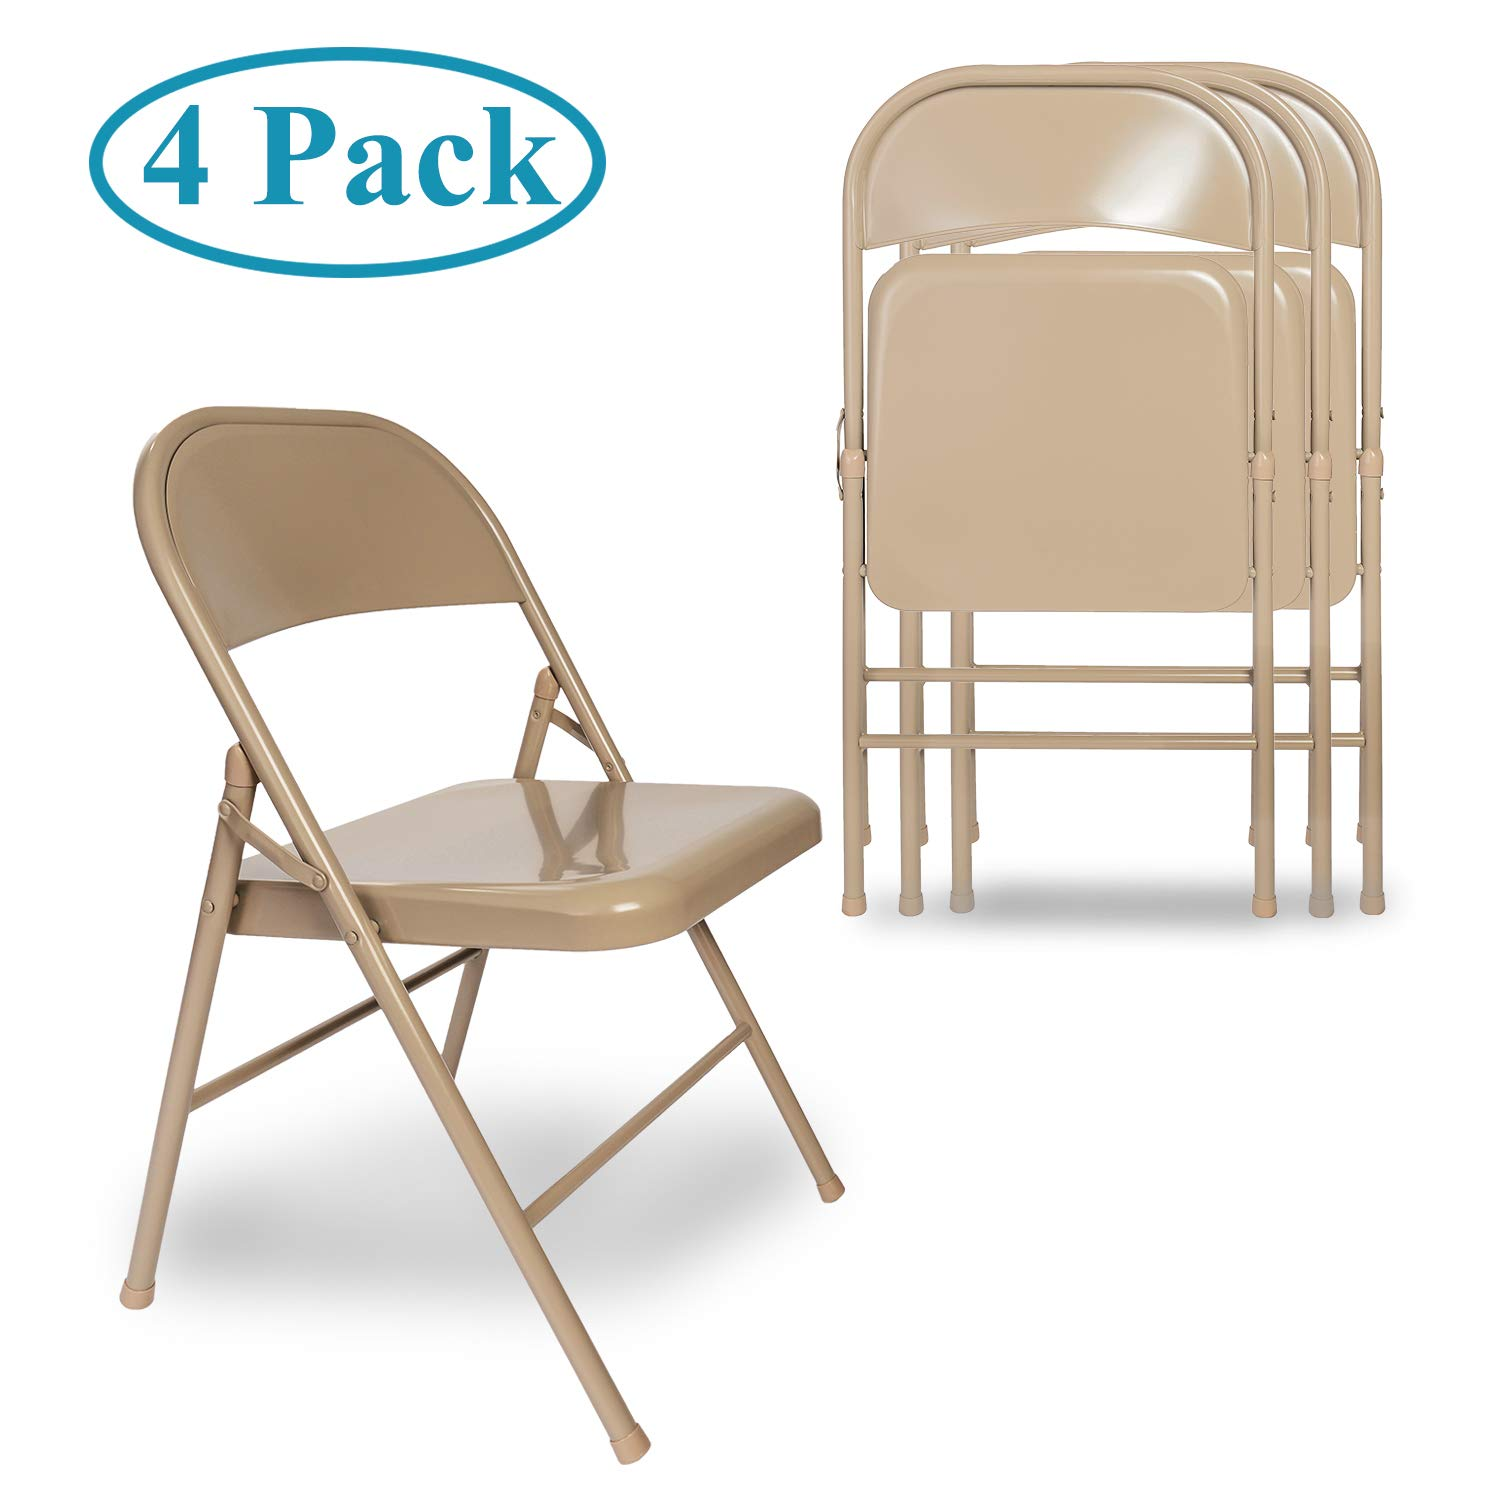 VECELO Folding Chair Back with Metal Frame for Home Office Set of 4 Beige